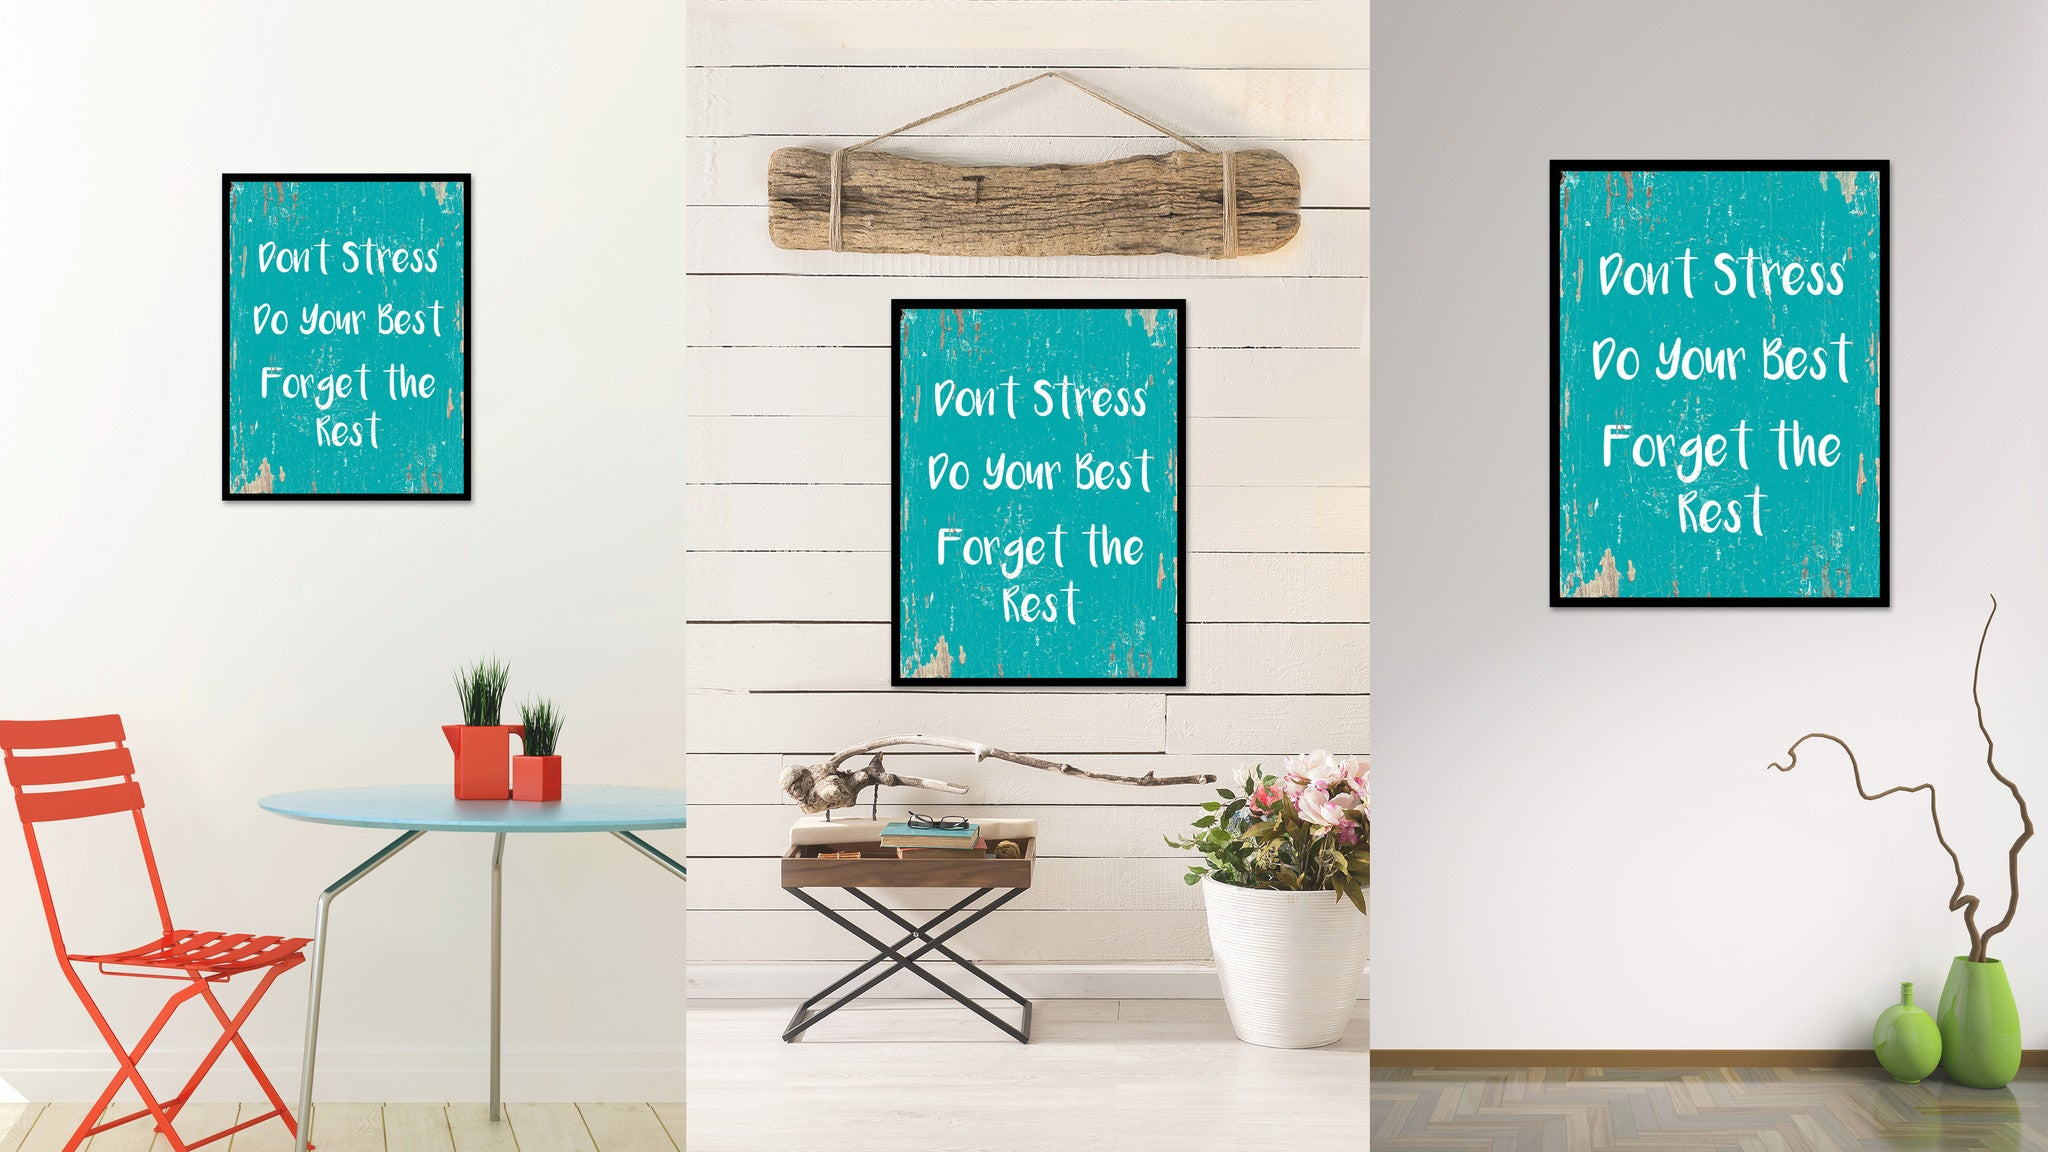 Don't Stress Do Your Best Forget The Rest Quote Saying Home Decor Wall Art Gift Ideas 111721